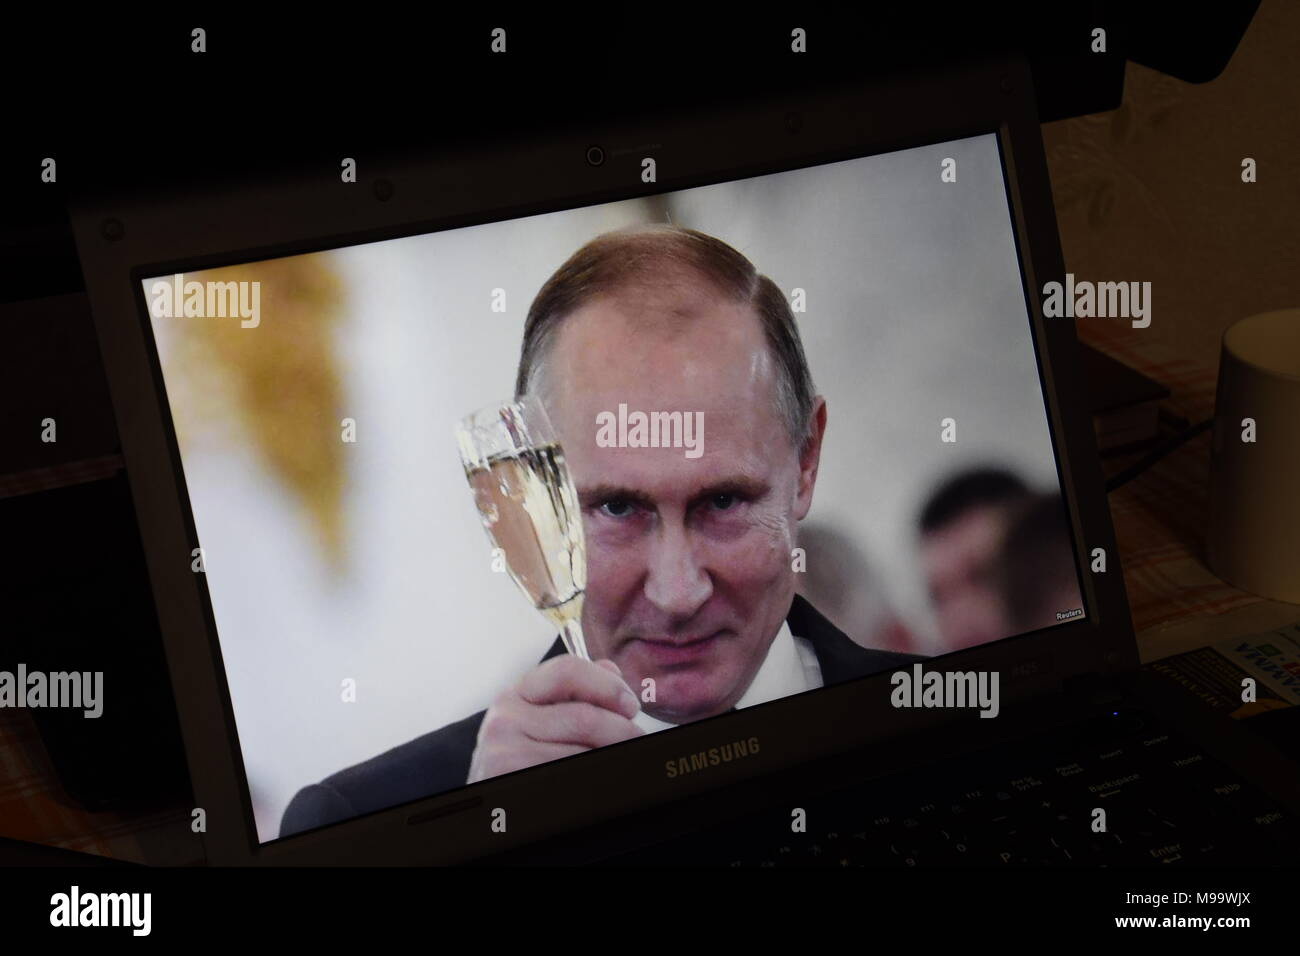 Russia, Poltavskaya village - Mart 24, 2018: Russian President Vladimir Putin on the laptop screen. Editorial illustrative. - Stock Image